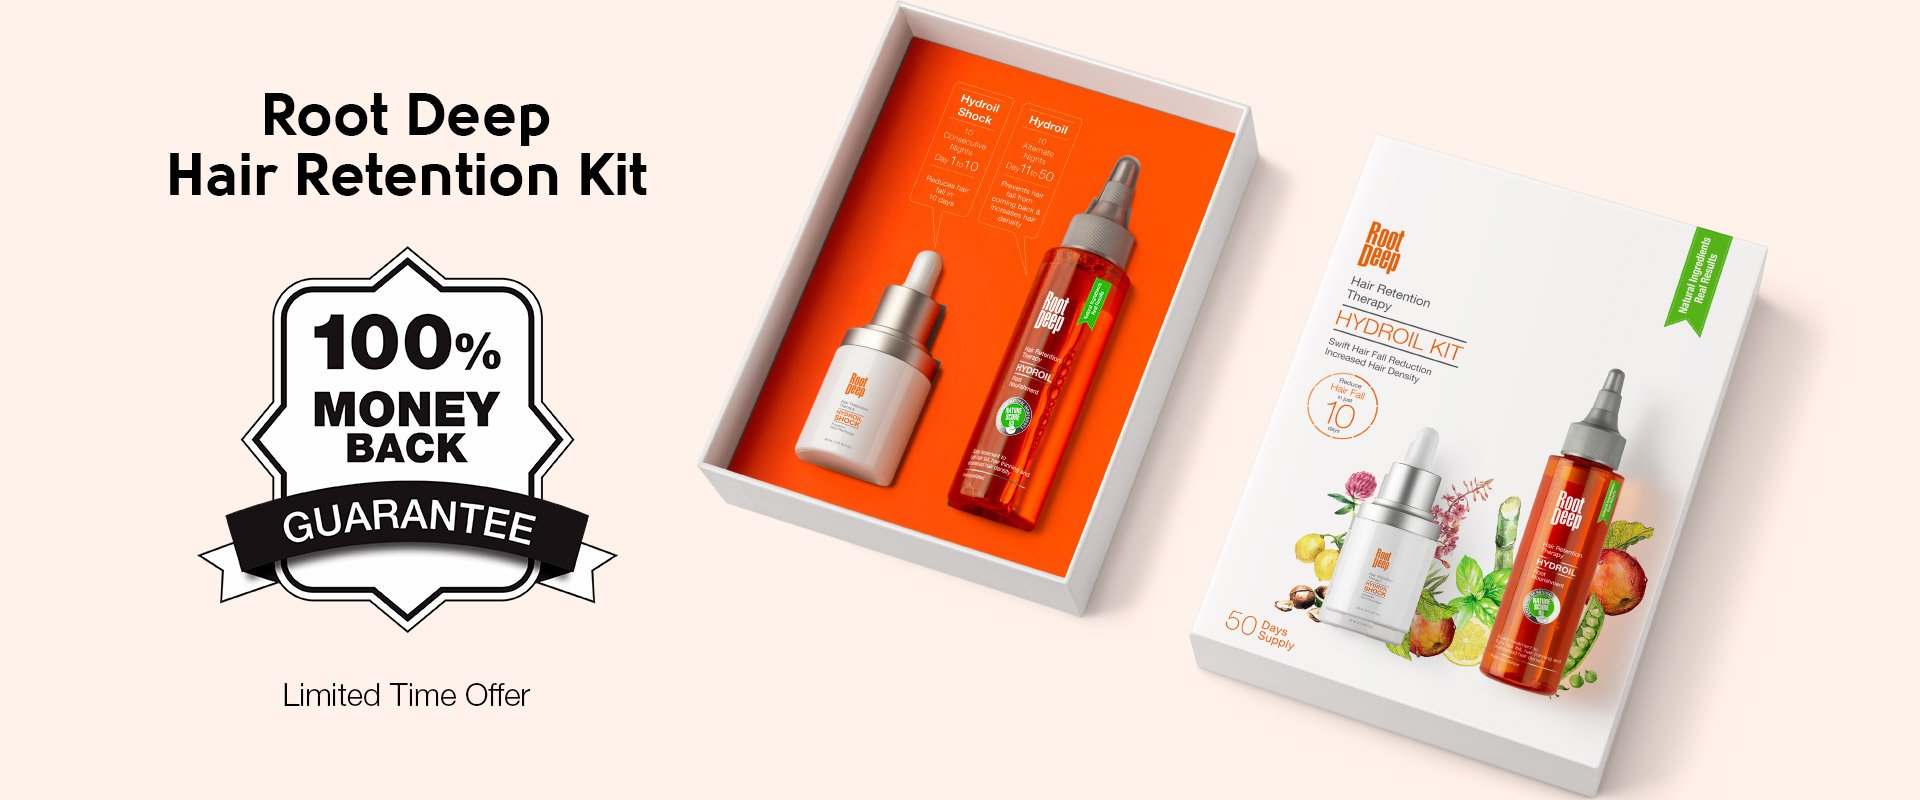 Root Deep Hydroil Kit_100%moneyback-Guarantee